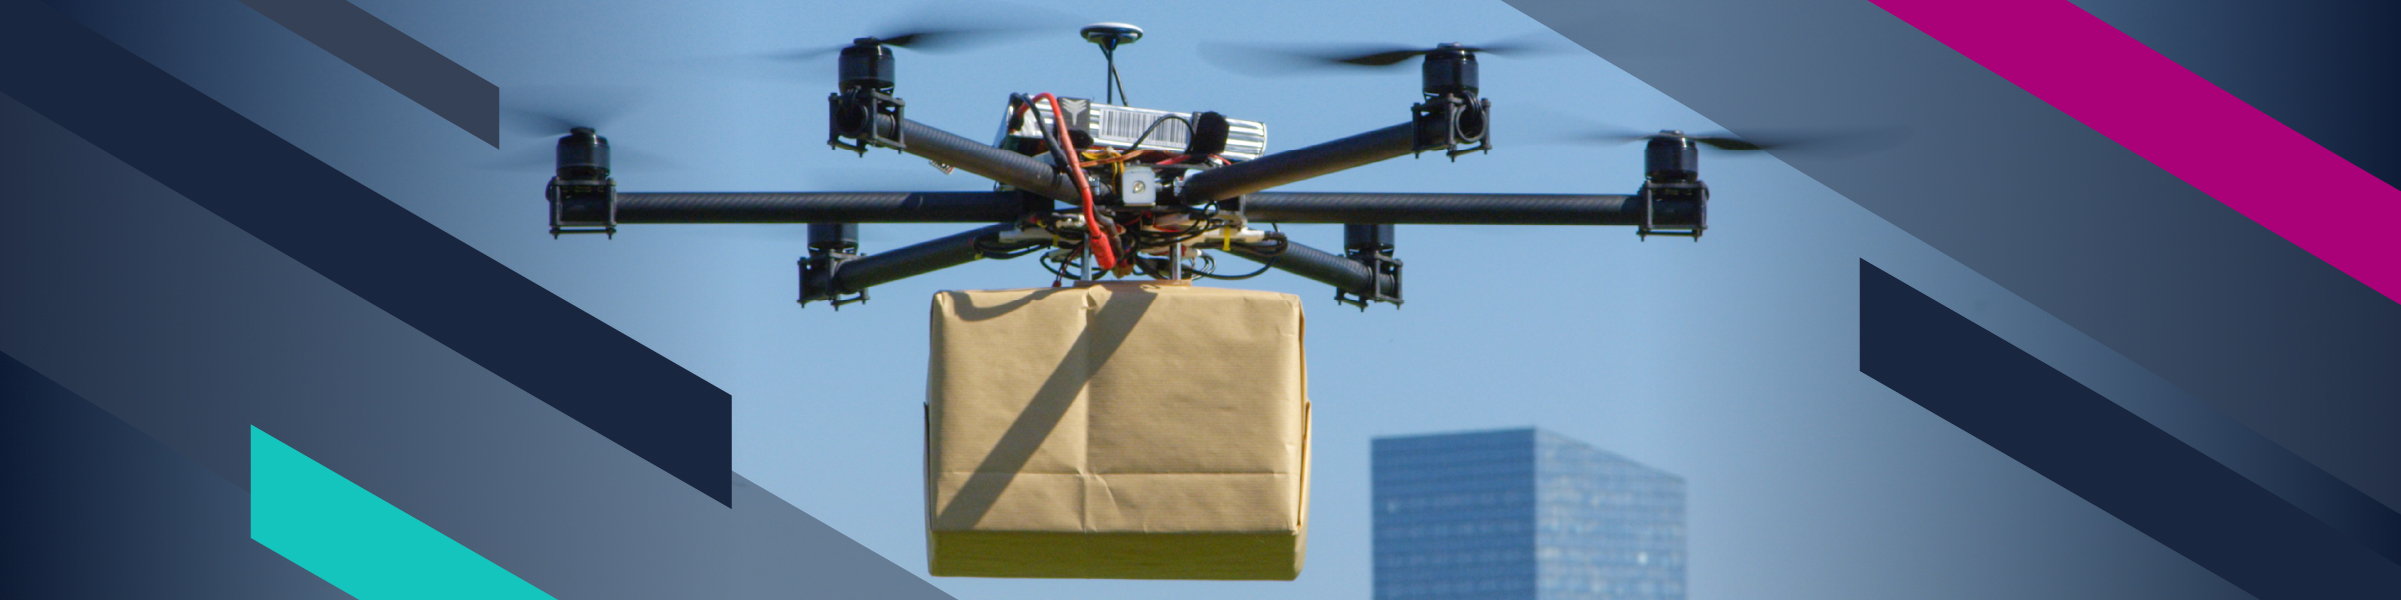 Drone Delivery: When can we expect our parcels to land?